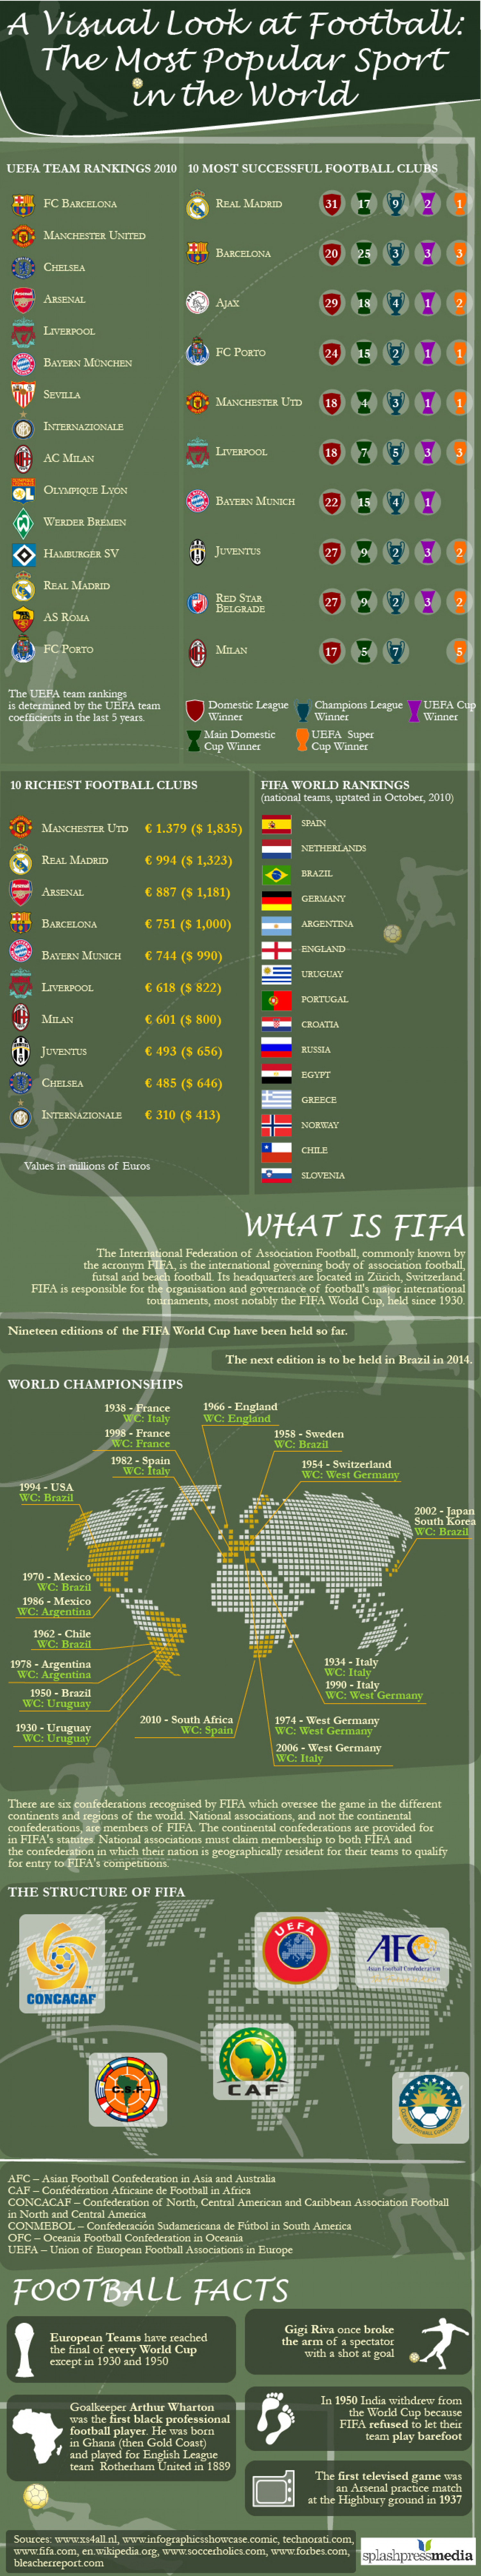 A Visual Look at Football the Most Popular Sport in the World Infographic